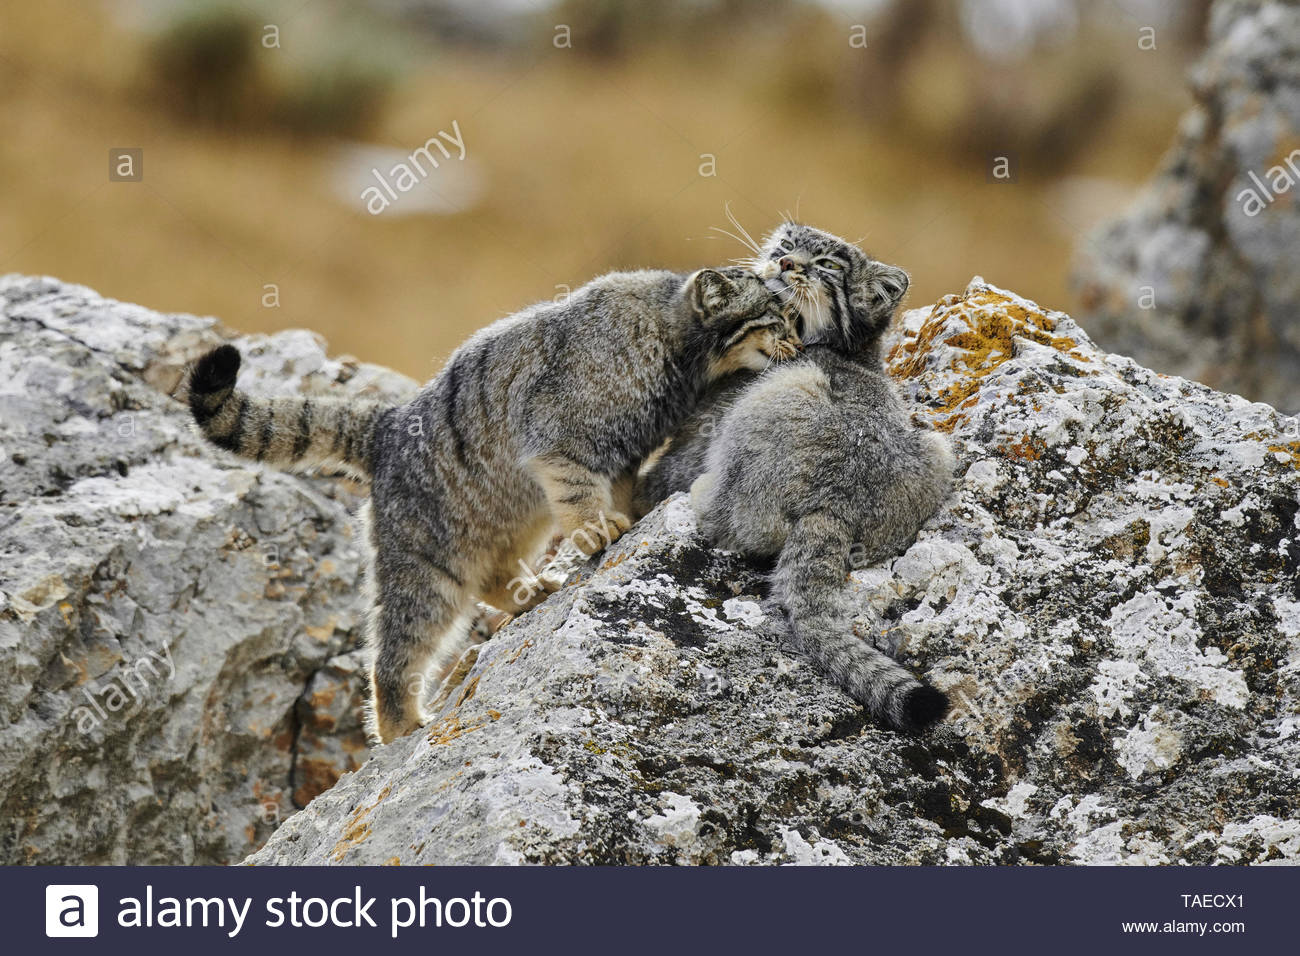 Pallas' cats (Otocolobus manul) on a rock, Tibetan Highland, Qinghai, China - Stock Image